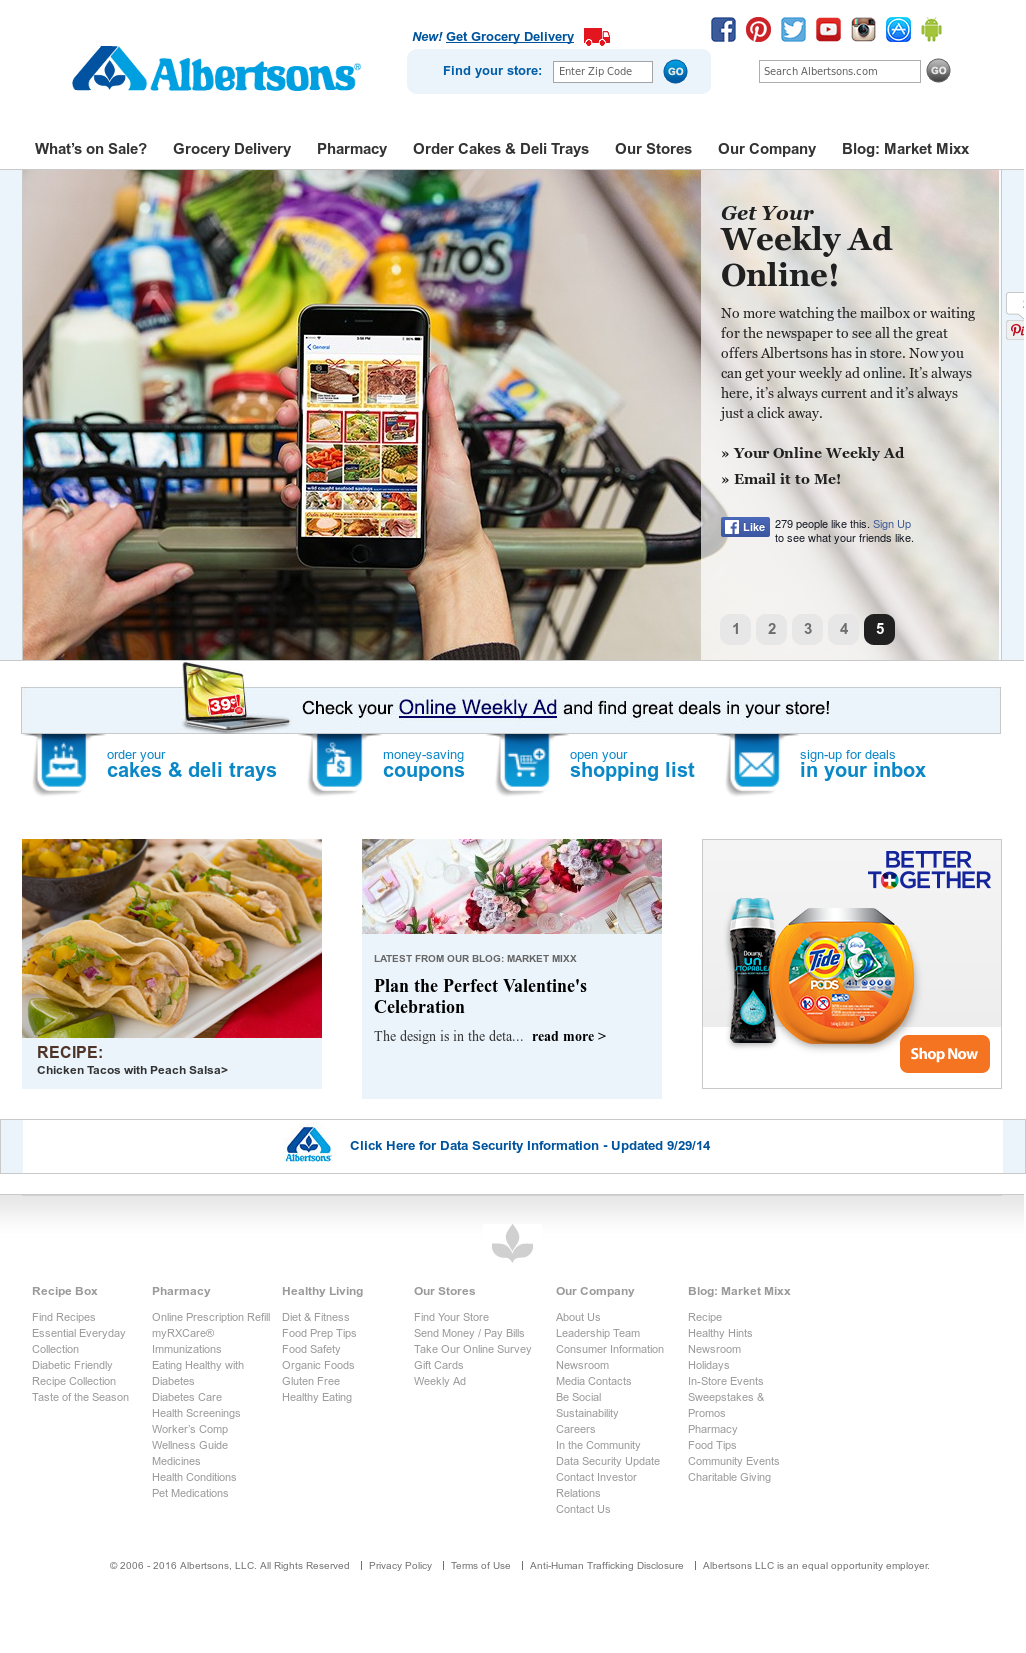 Albertsons Competitors, Revenue and Employees - Owler Company Profile